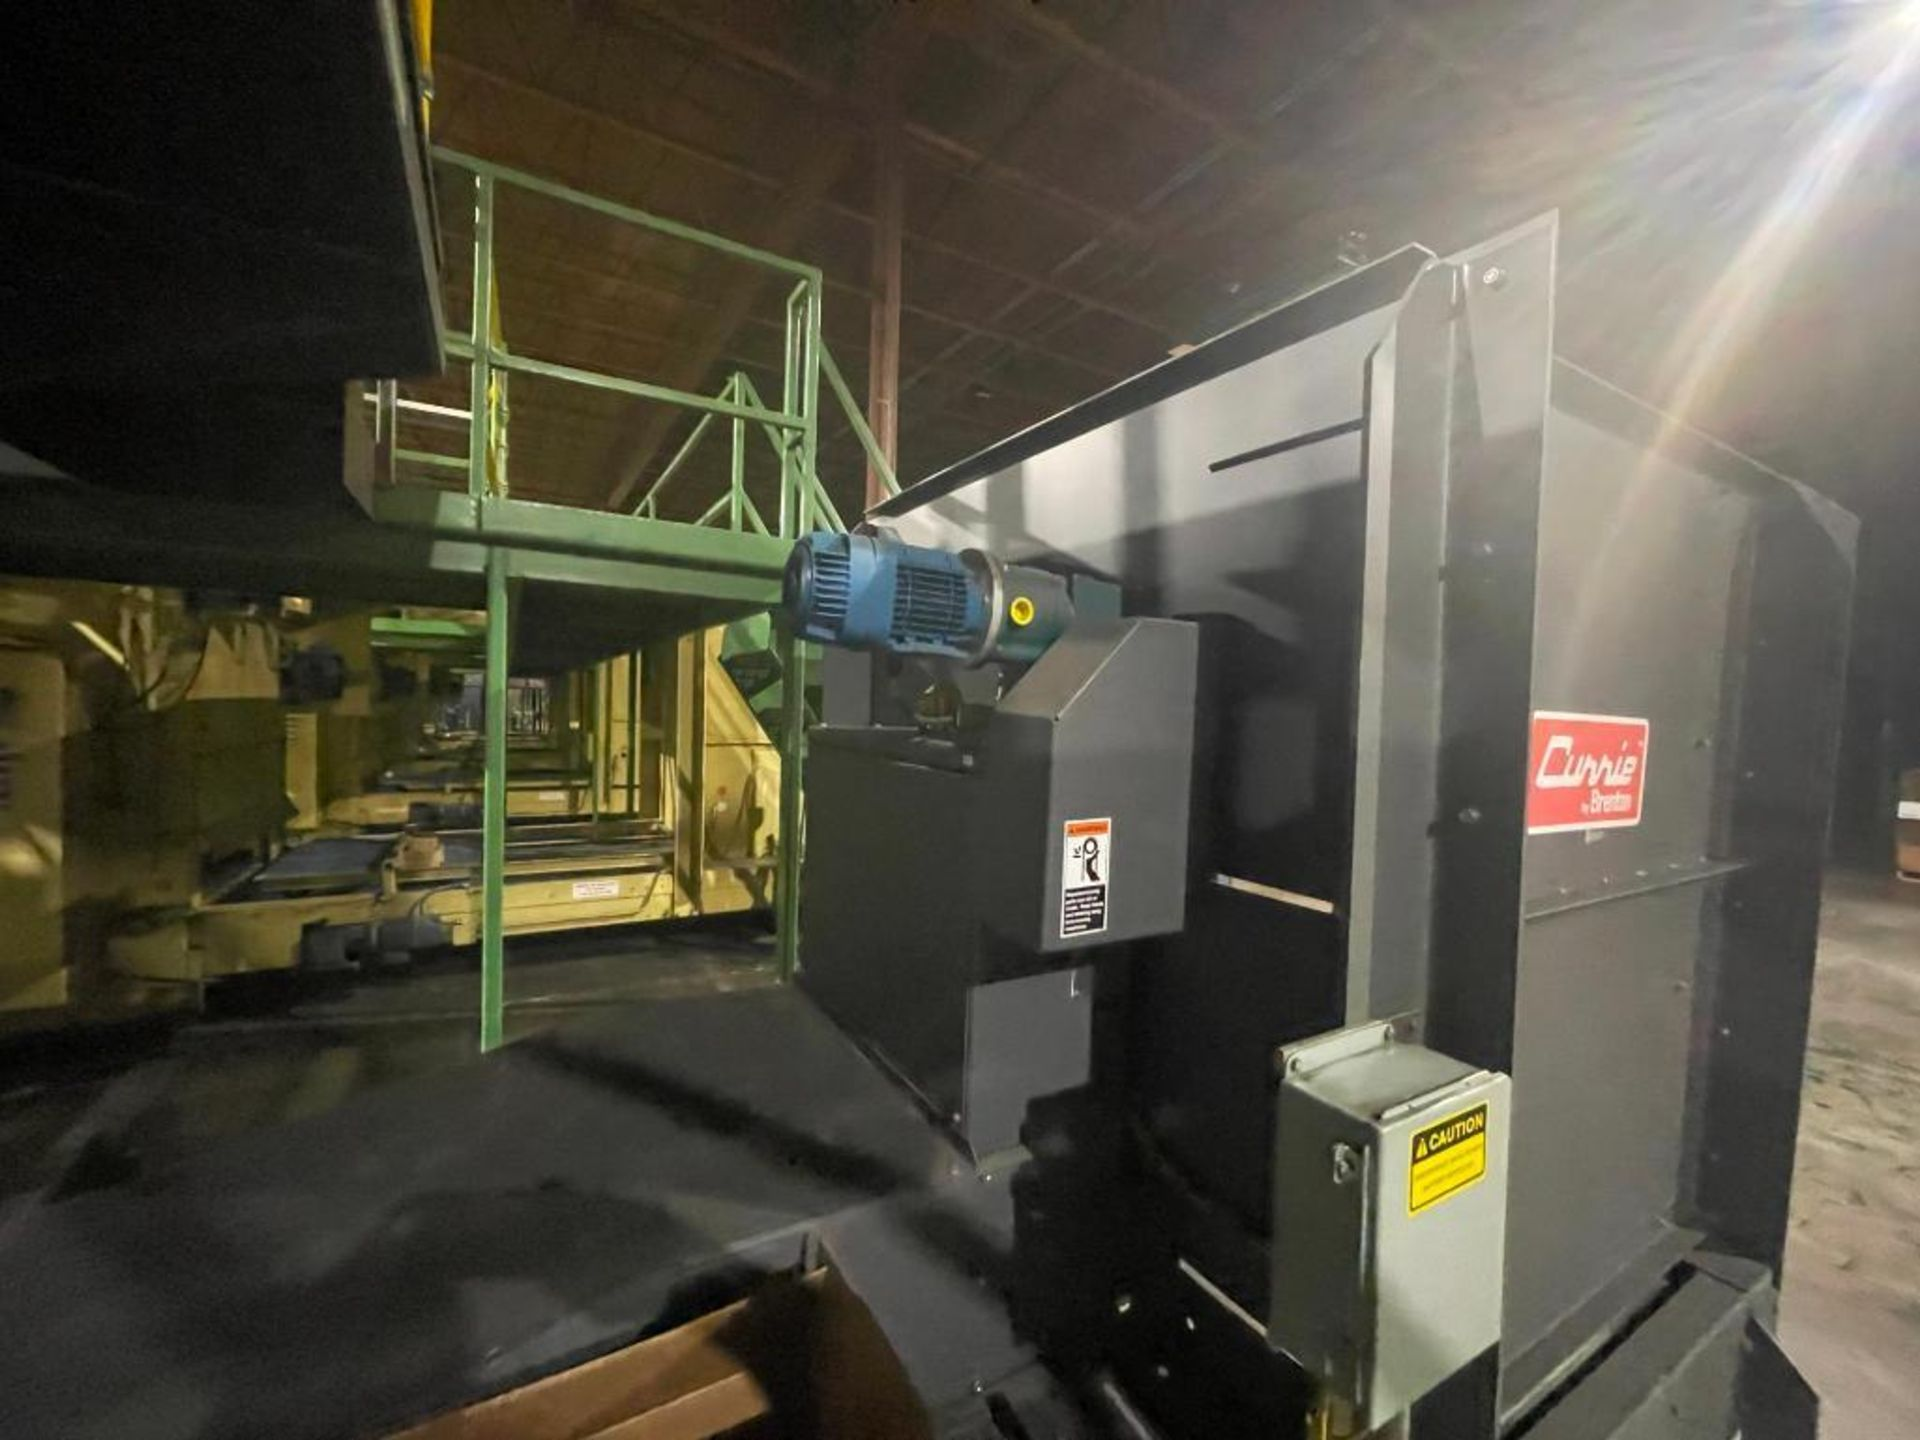 2008 Currie top to bottom palletizer, model PALLETIZER, sn 3348 - Image 7 of 28